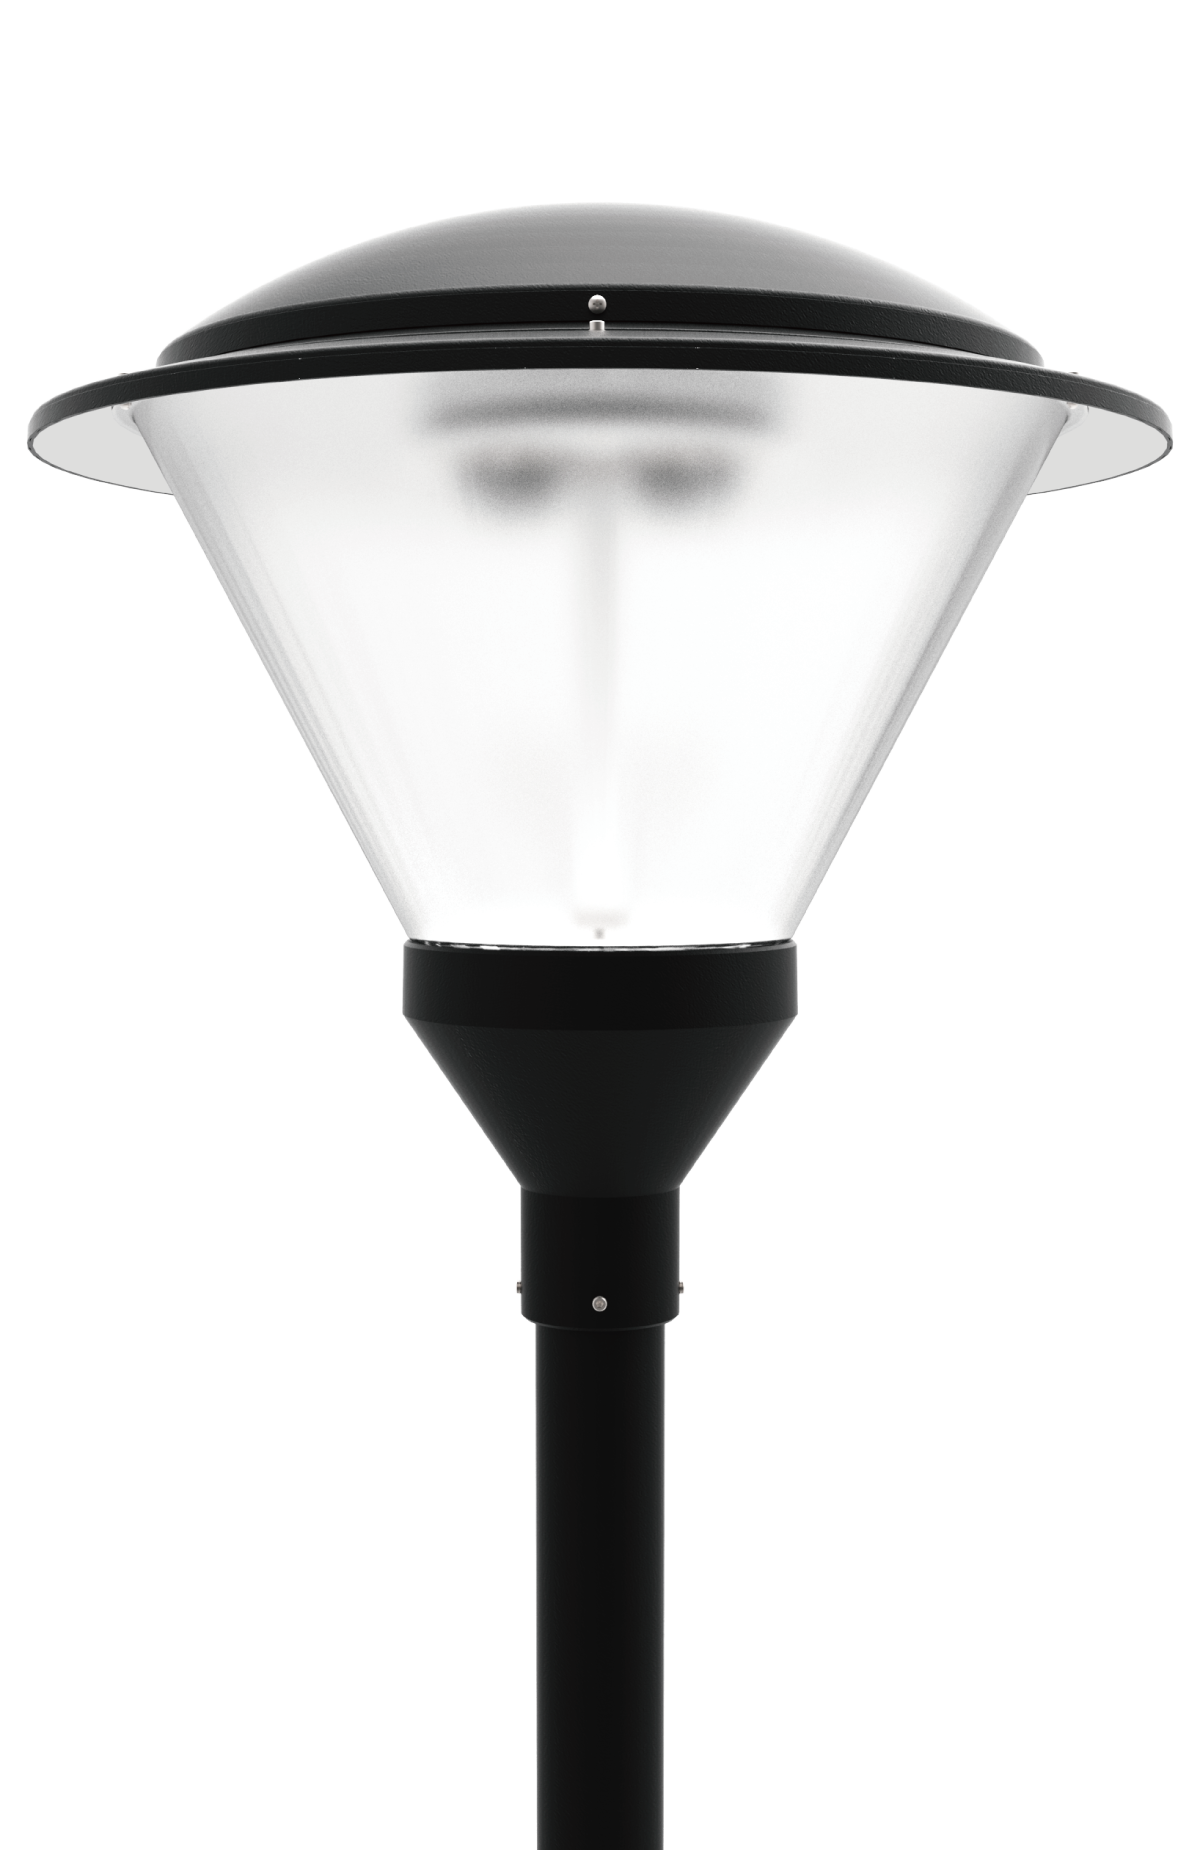 Led pt 642 series led post top light fixtures outdoor luminaires send us an email arubaitofo Image collections